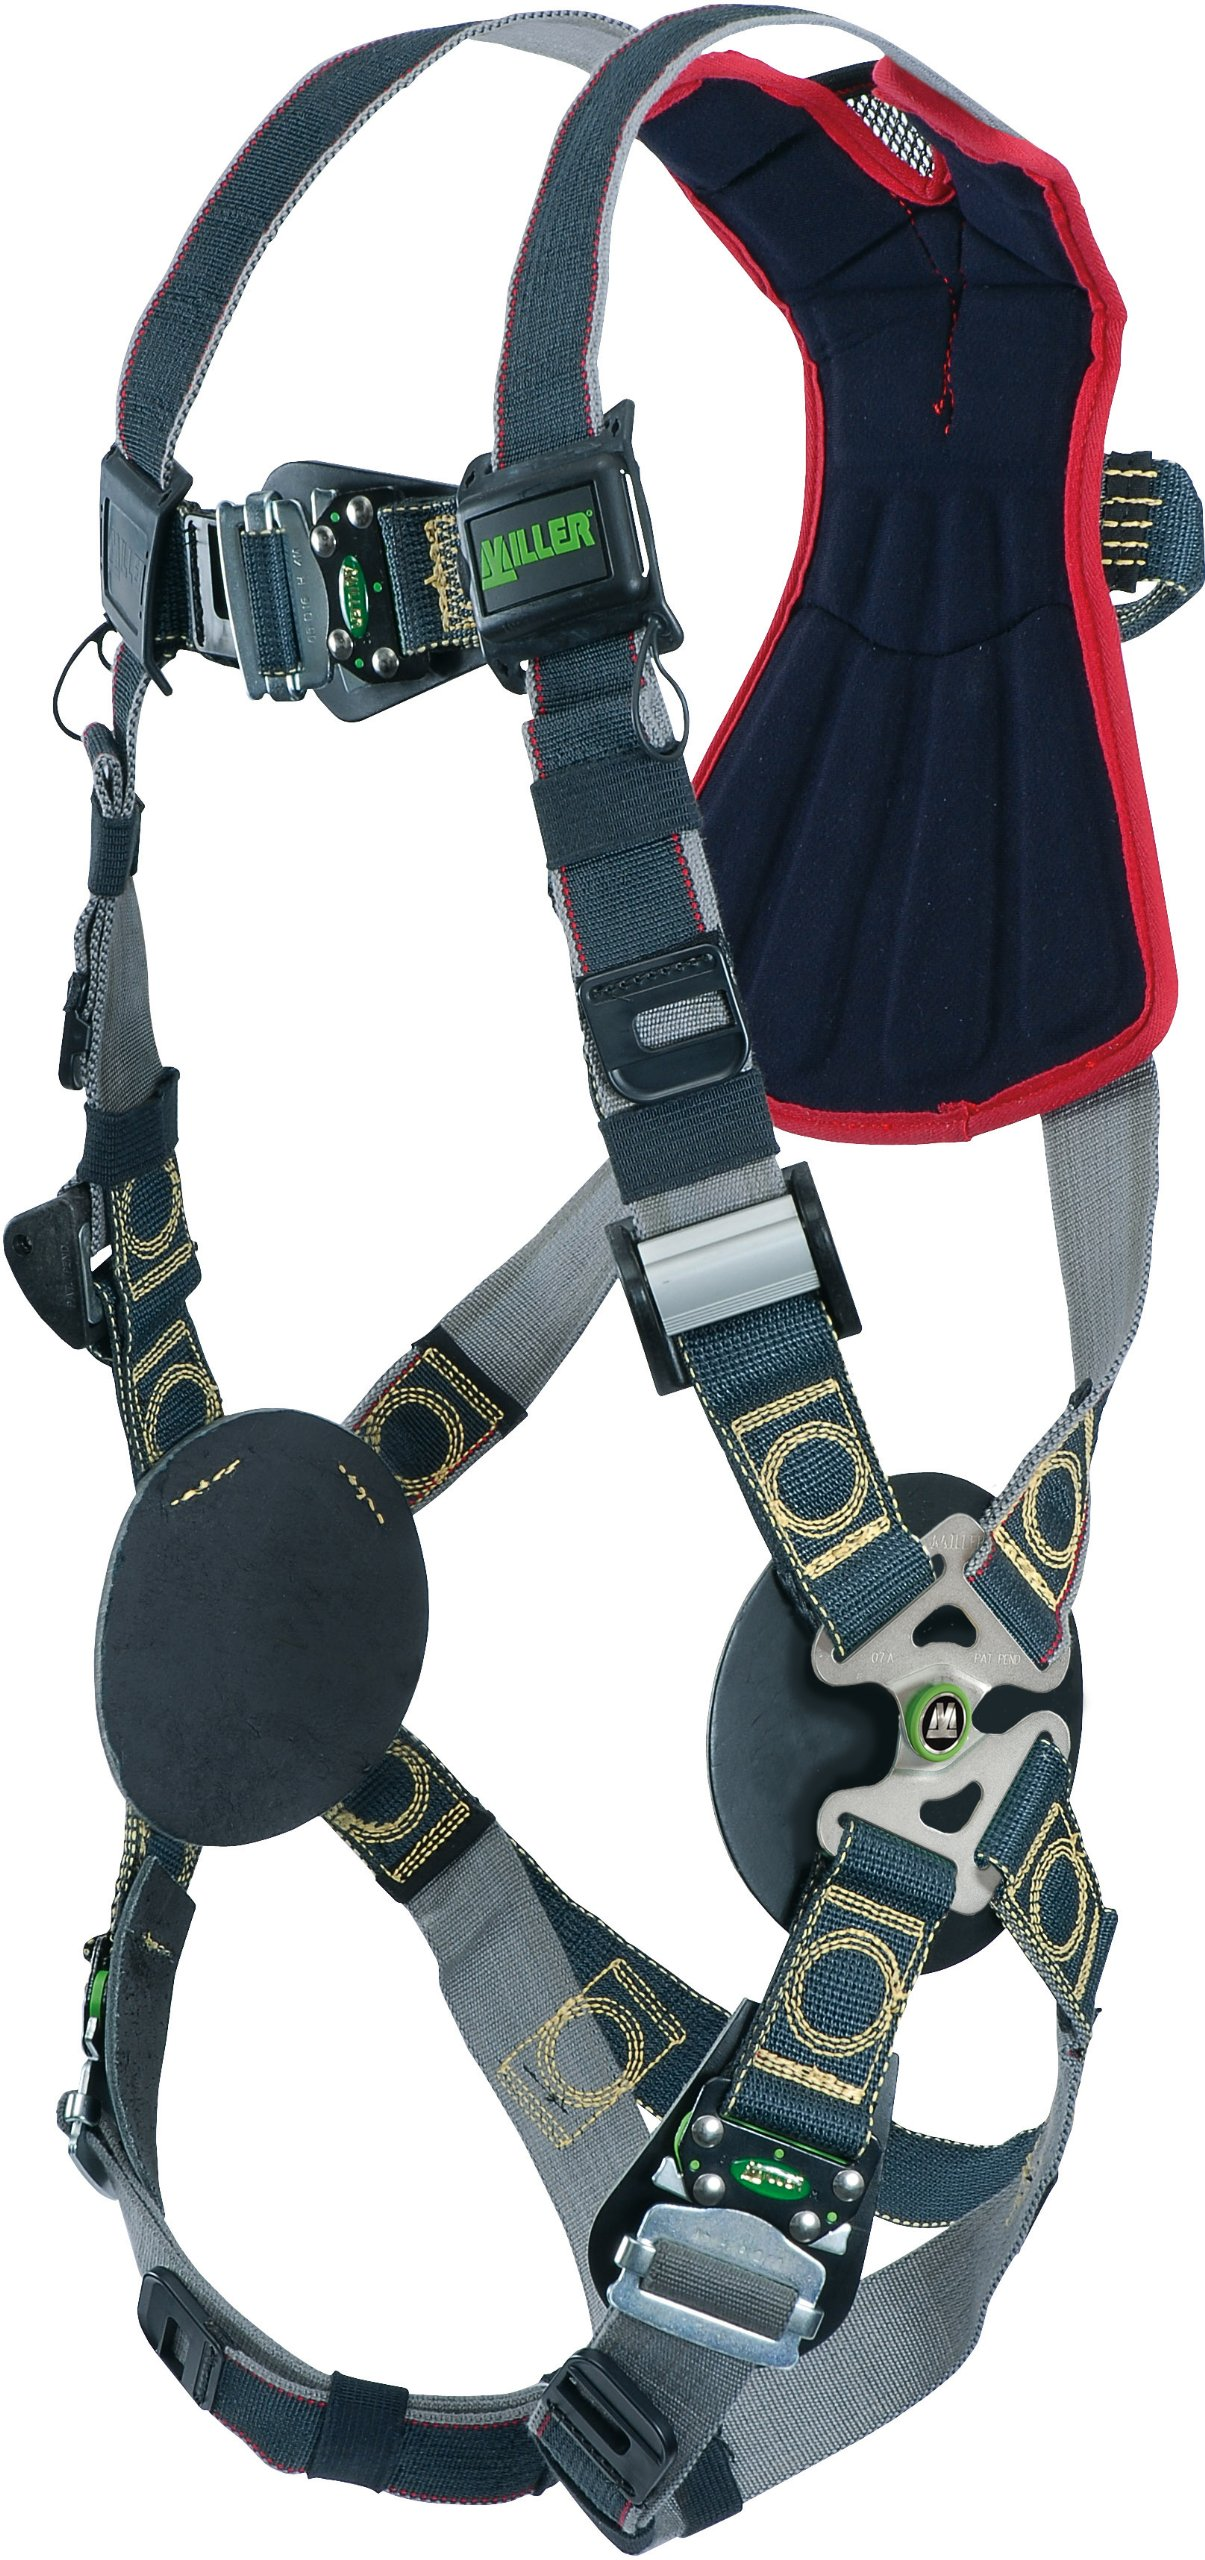 Miller RKNAR-QC-B/UBK Revolution Arc Rated Harness with Kevlar-Nomex Webbing, Removable Belt and Quick-Connect Leg Buckles, Black, Universal Size (Large/XL)